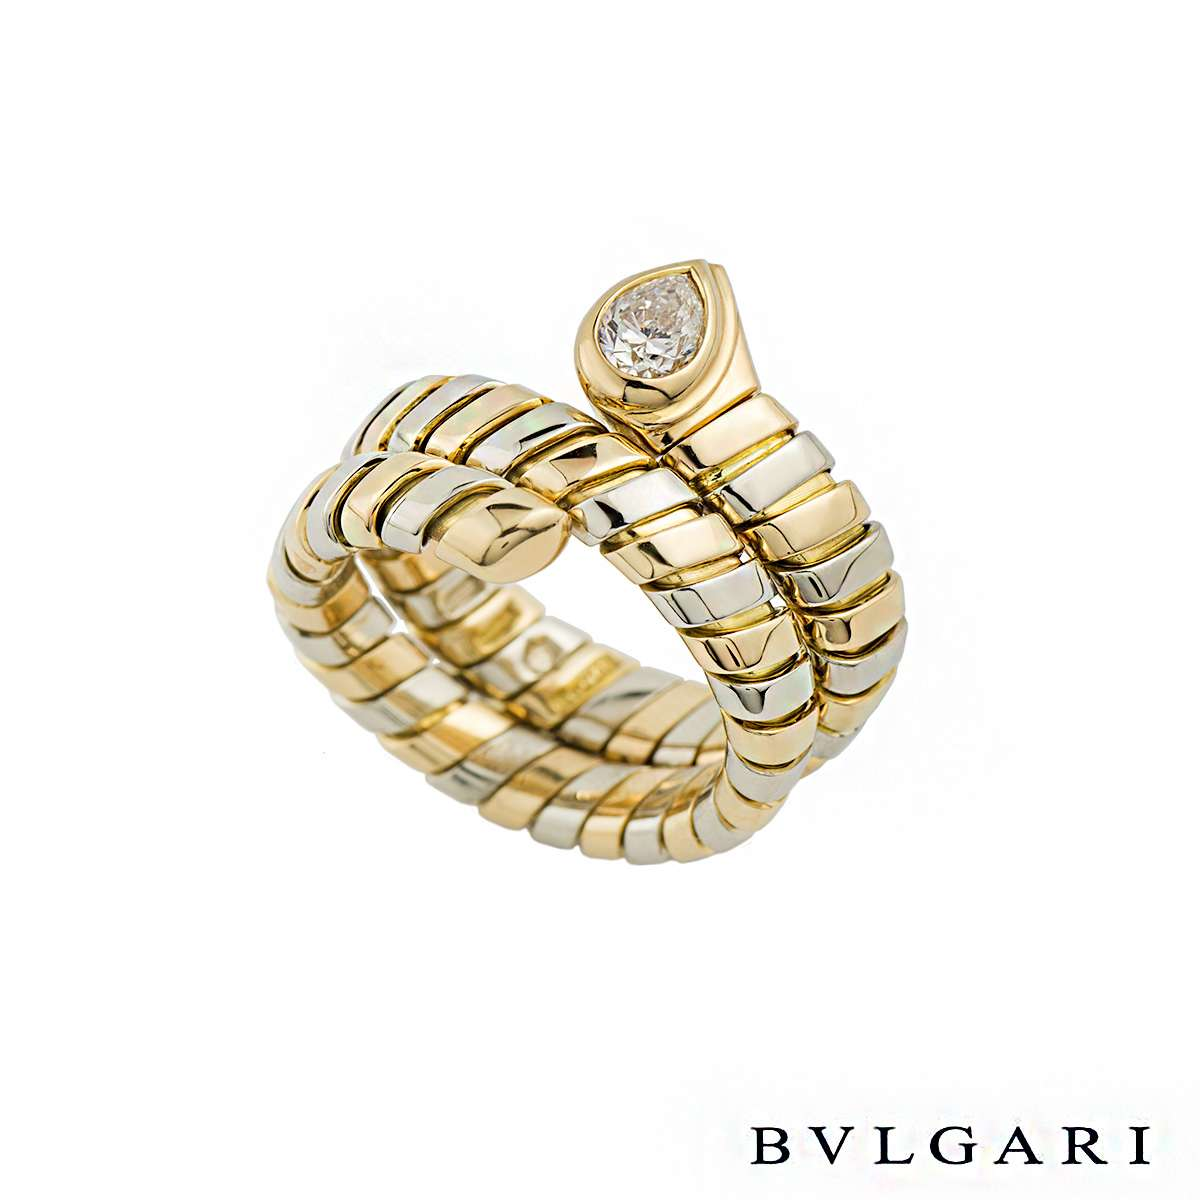 Bvlgari 18k Yellow & White Gold Diamond Tubogas Ring 0.38ct